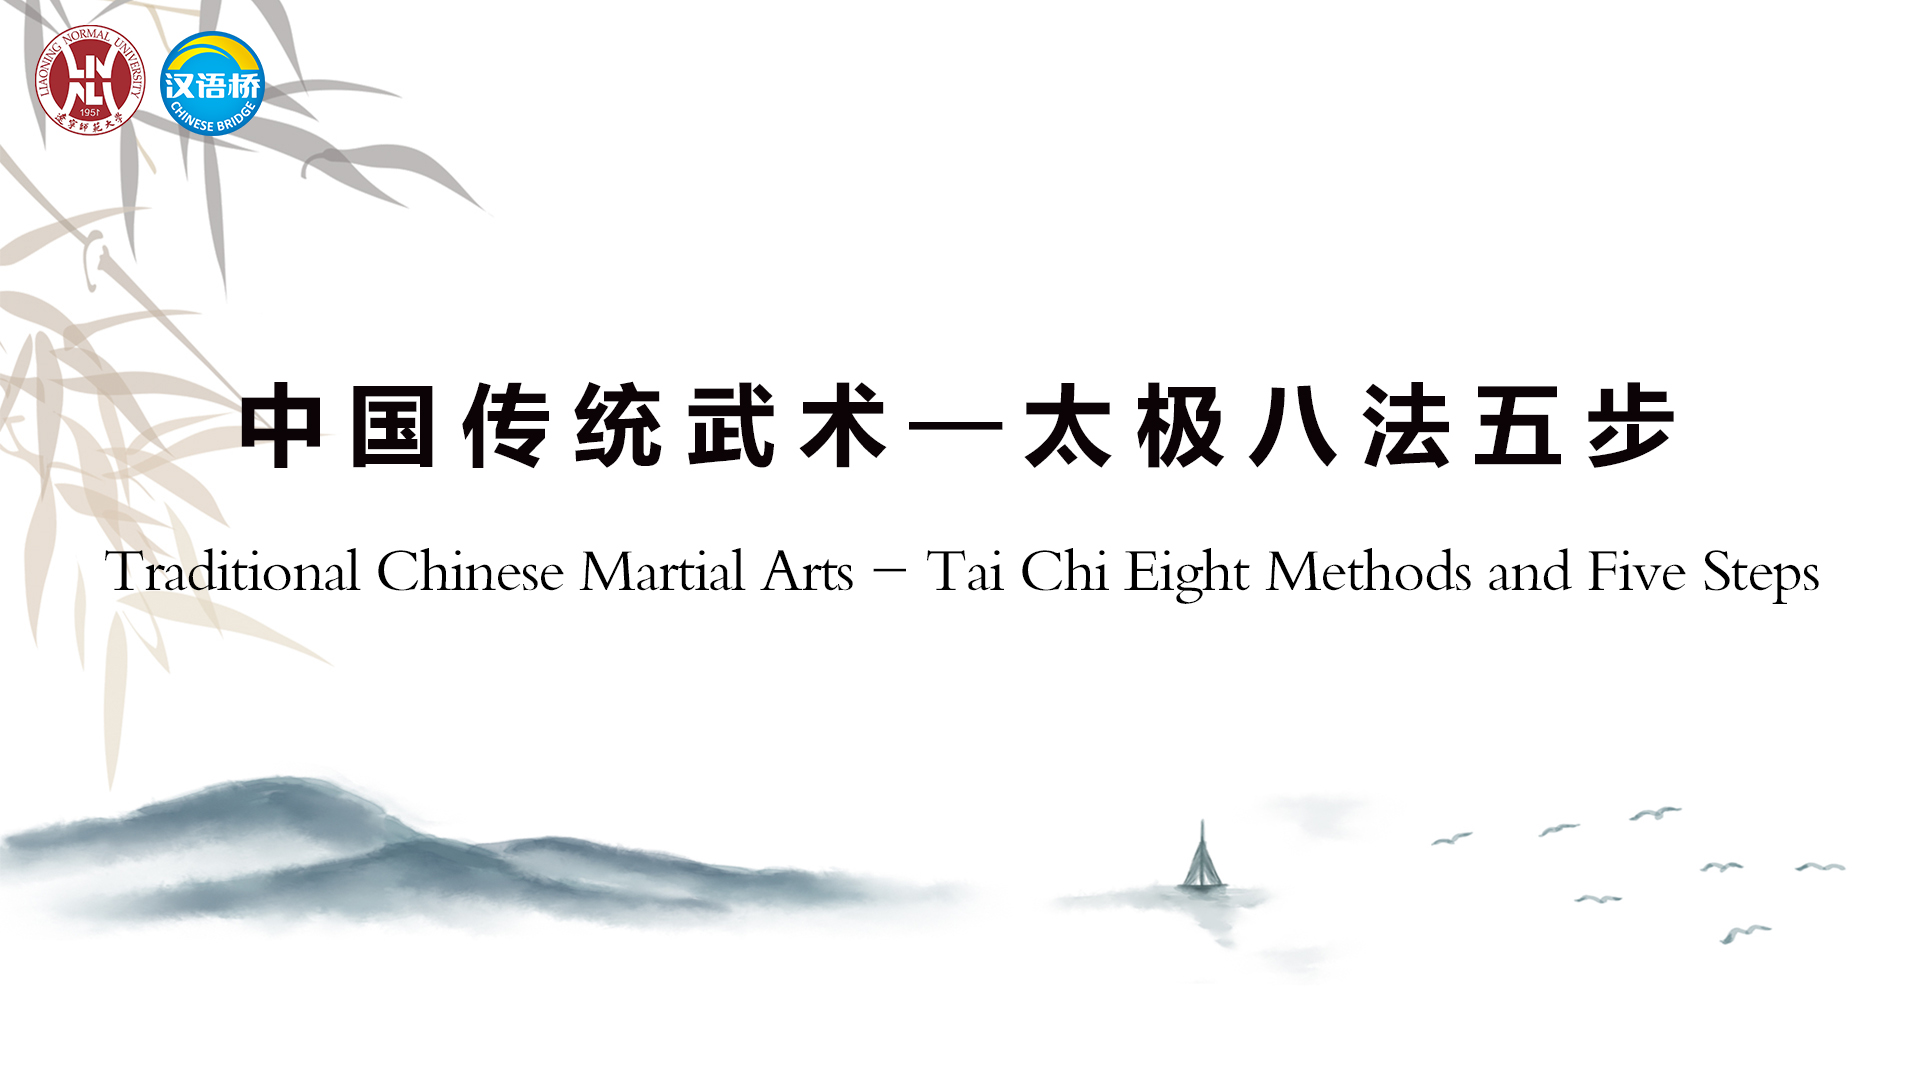 Traditional Chinese Martial Arts - Tai Chi Eight Methods and Five Steps